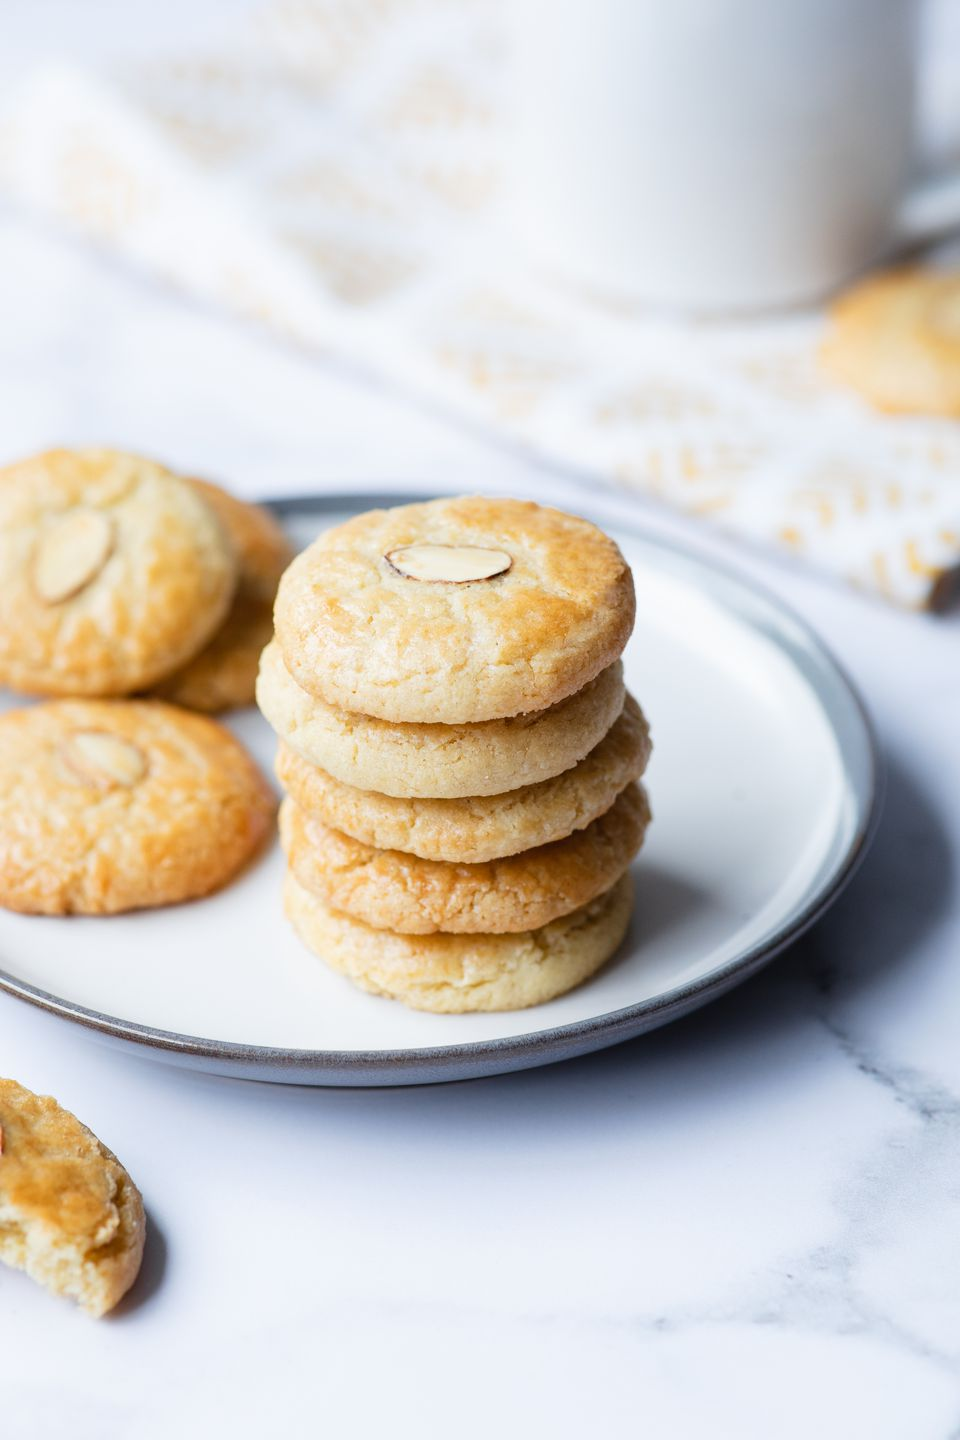 Almond cookies stacked and scattered on a plate.